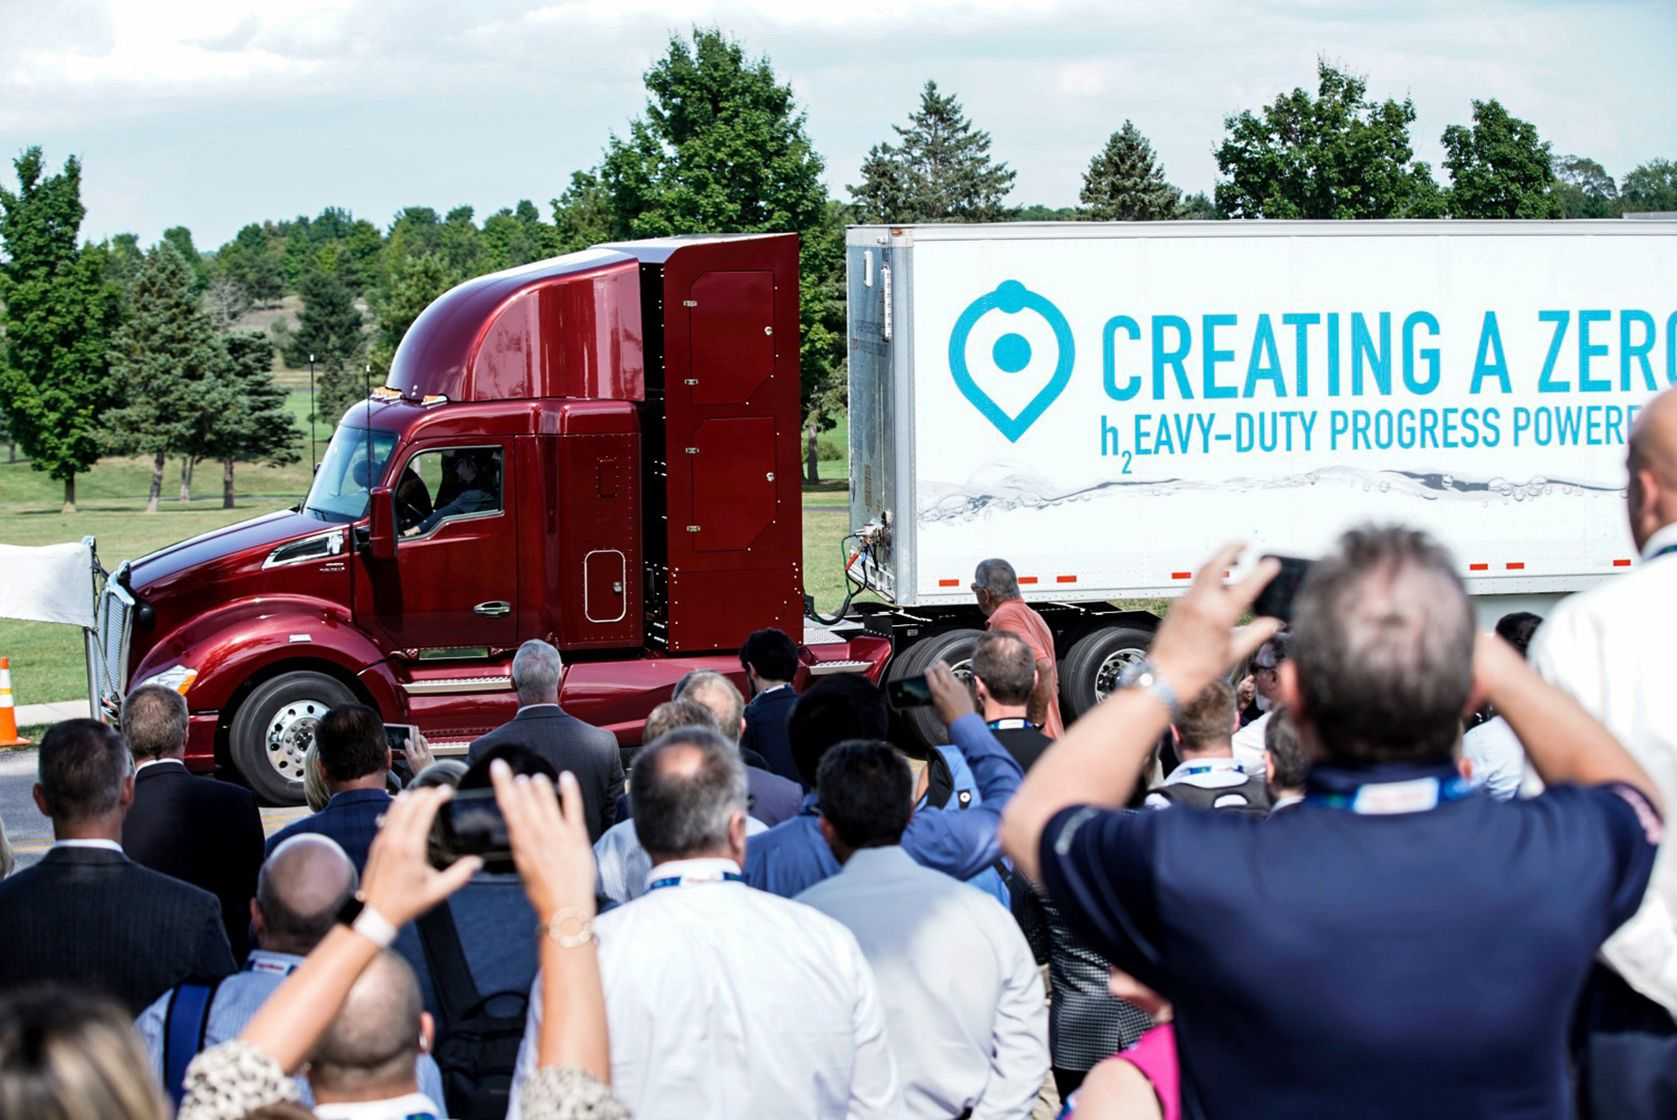 Second Version of Fuel Cell Heavy-duty Truck Reveal